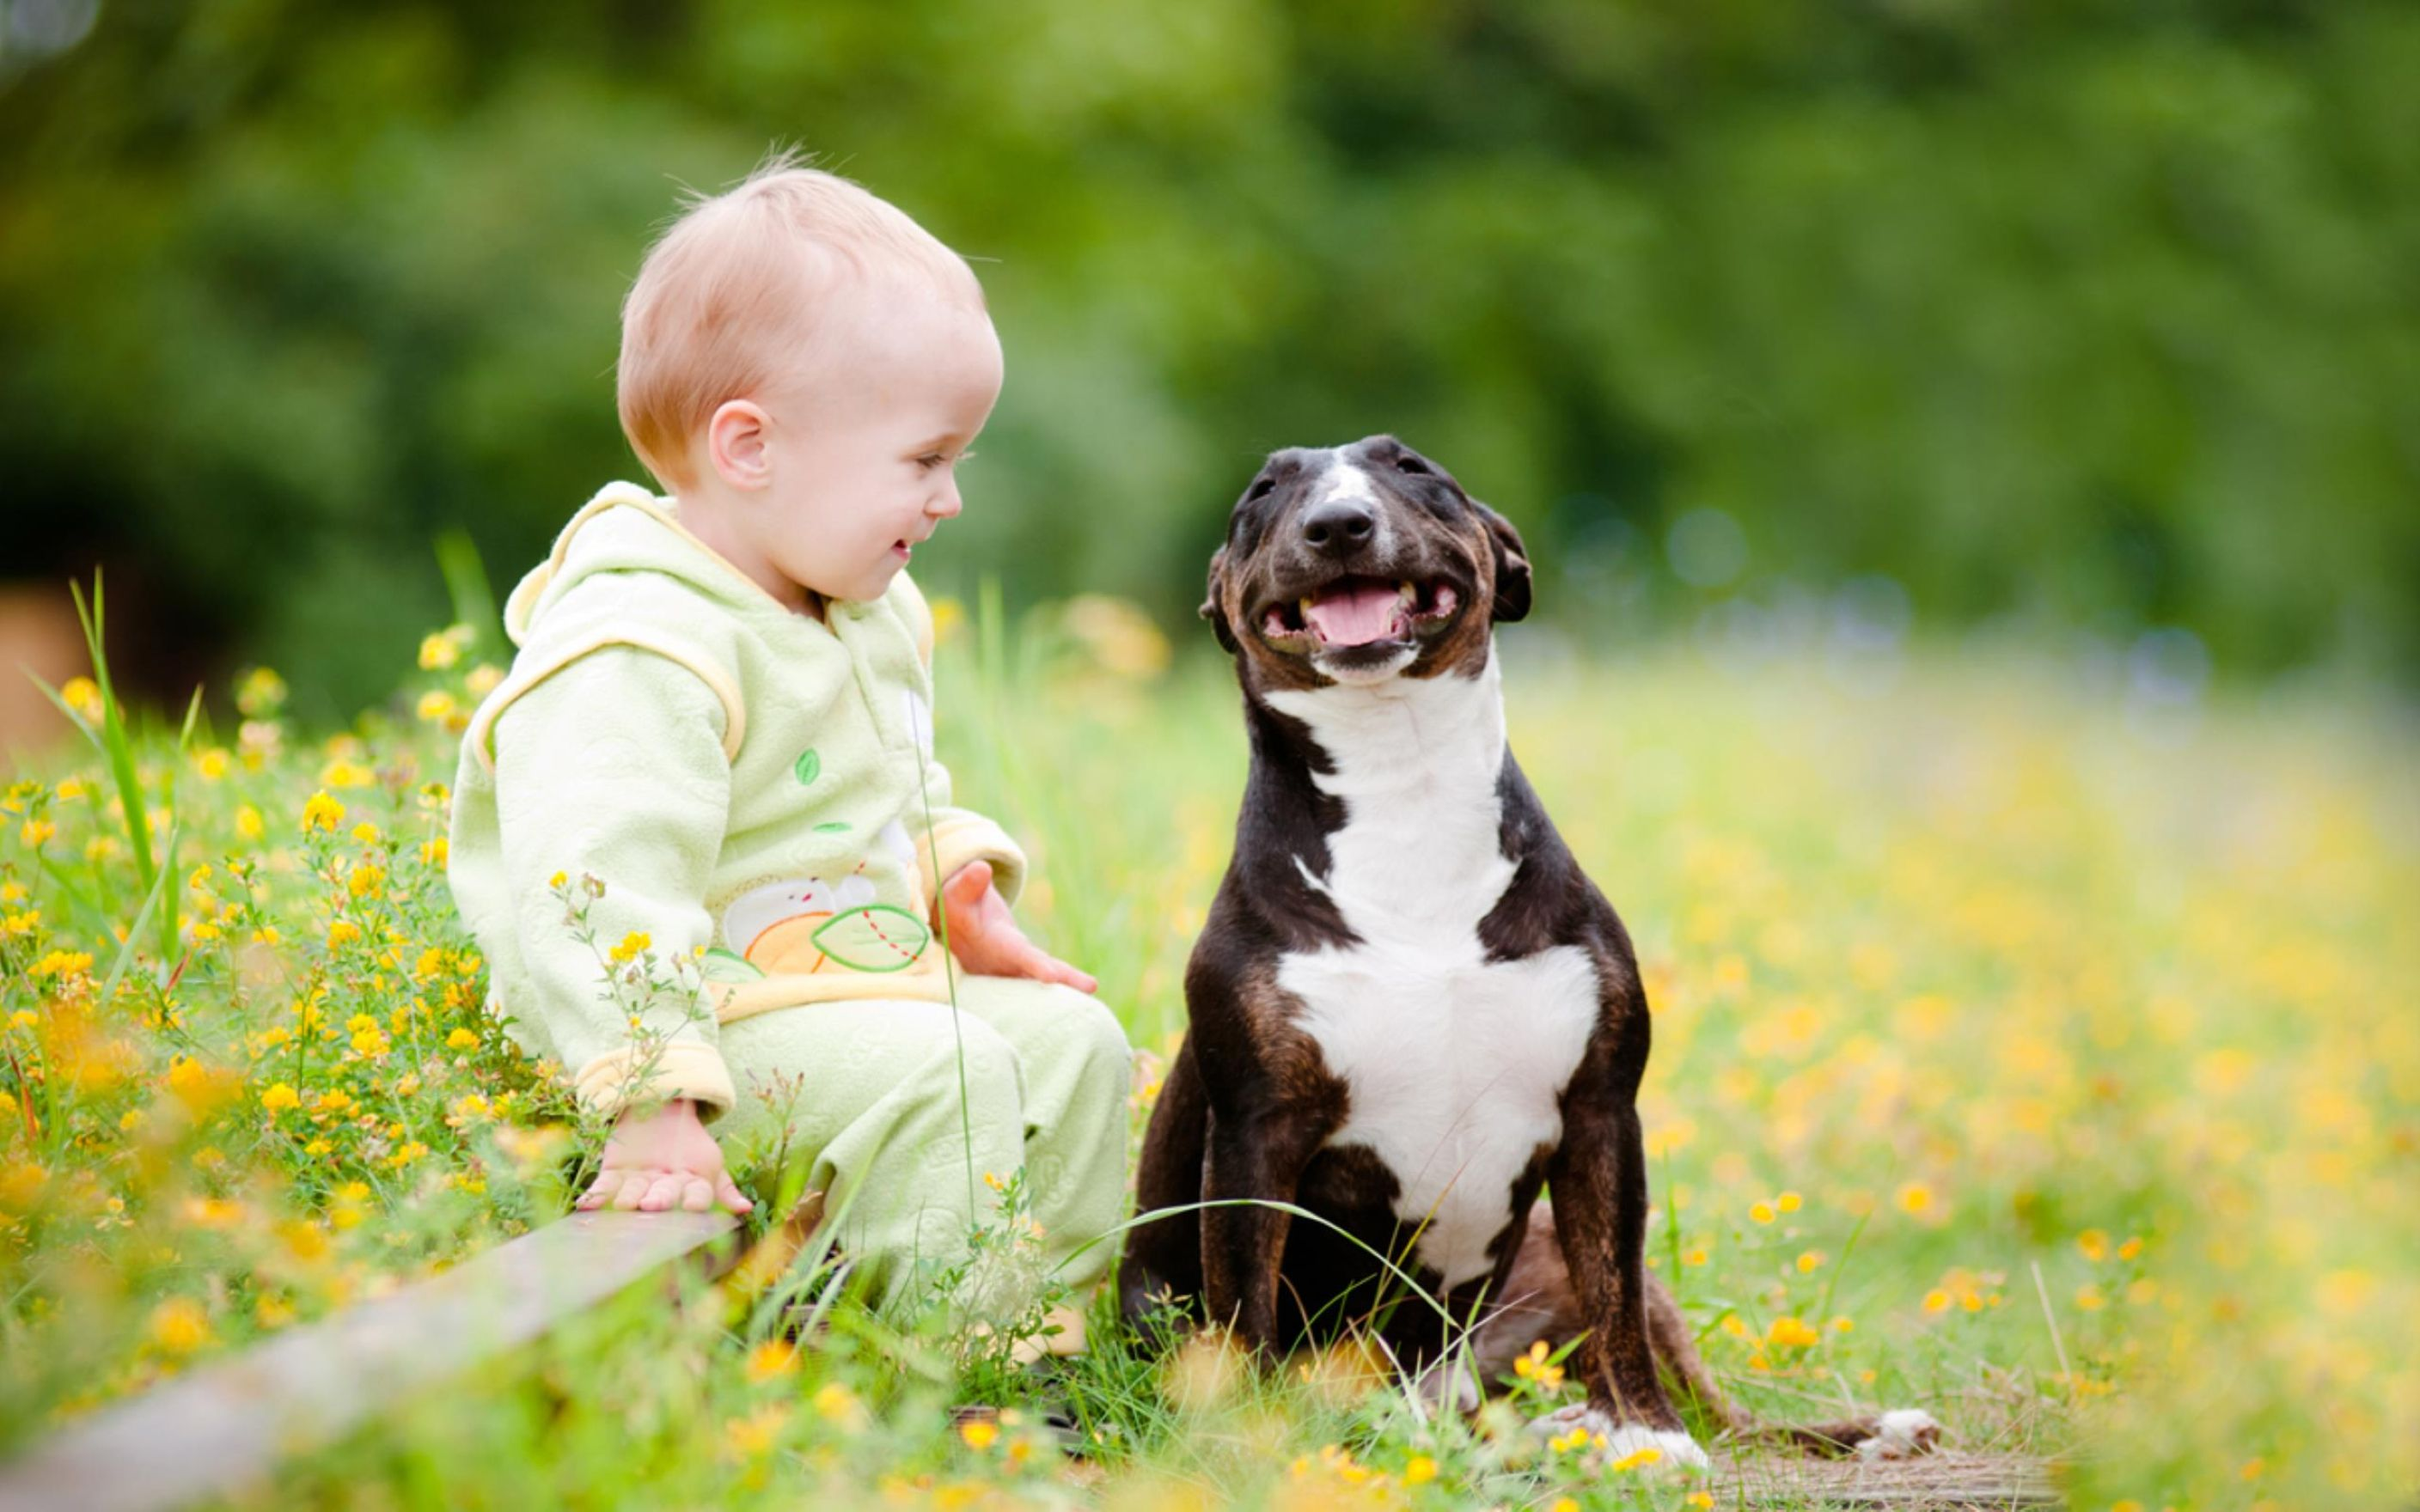 cute image of a small child and puppy wallpaper desktop hd